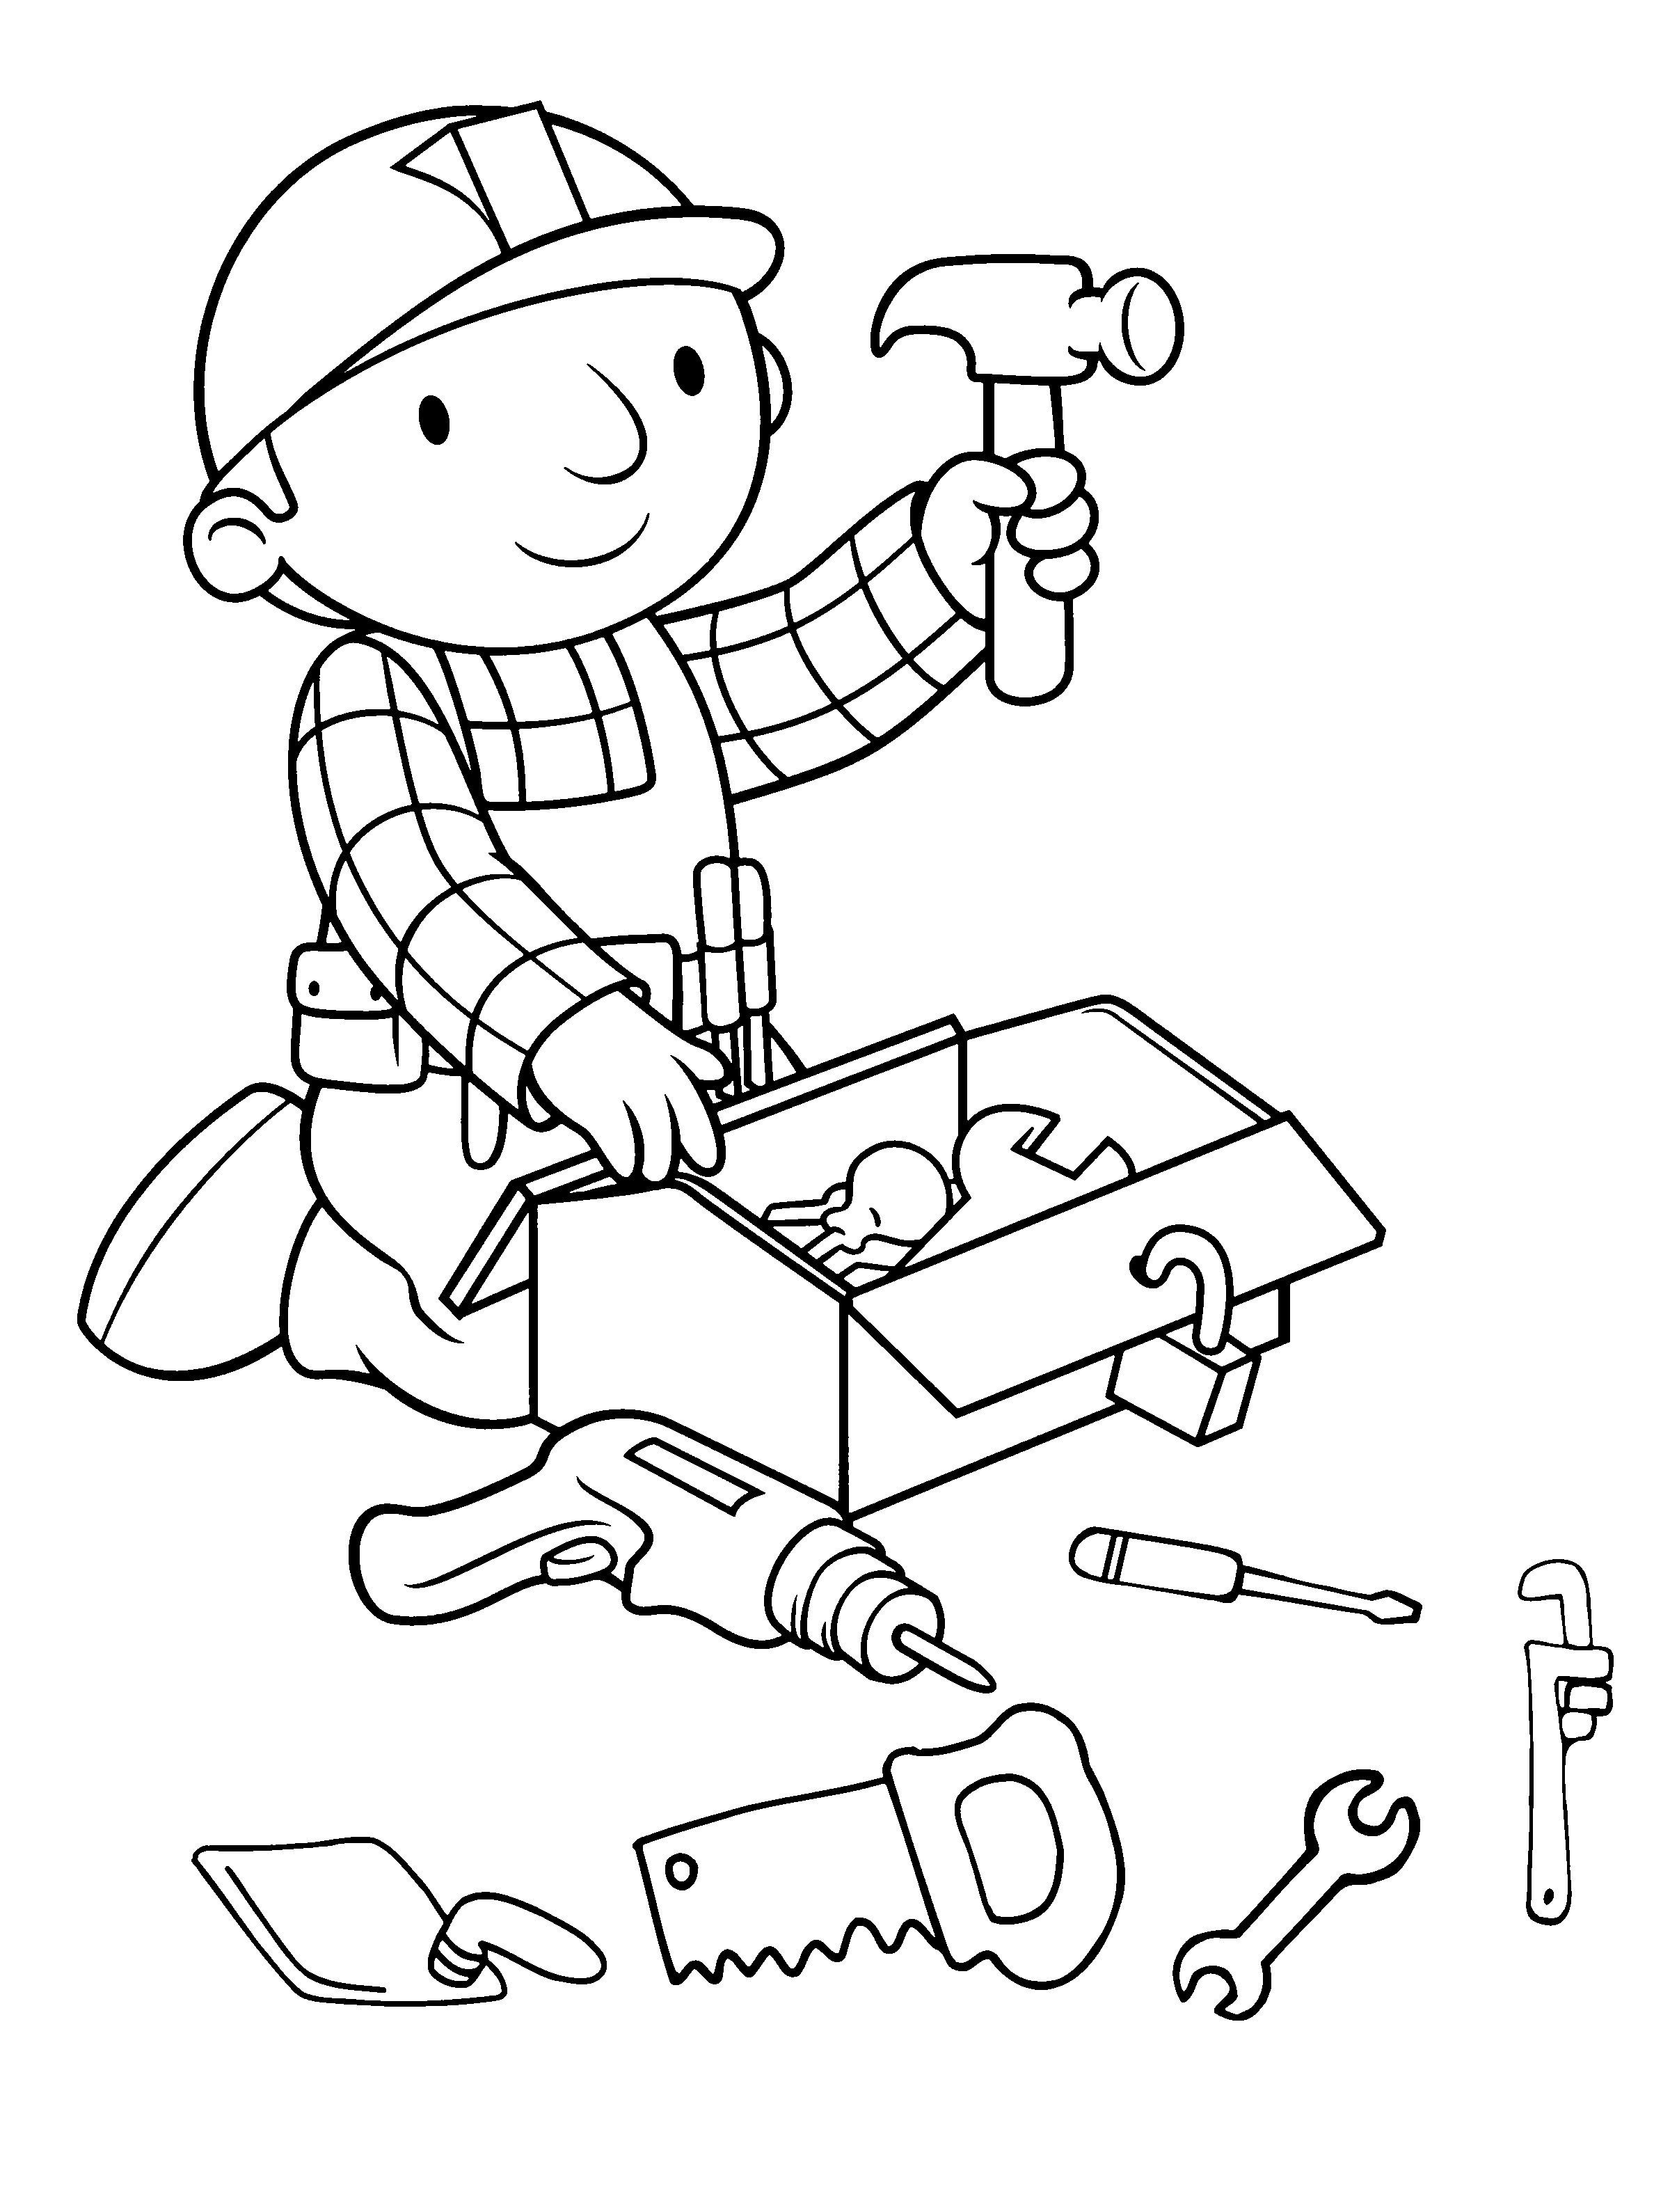 Free Bob The Builder Coloring Pages With Bob The Builder Up ...